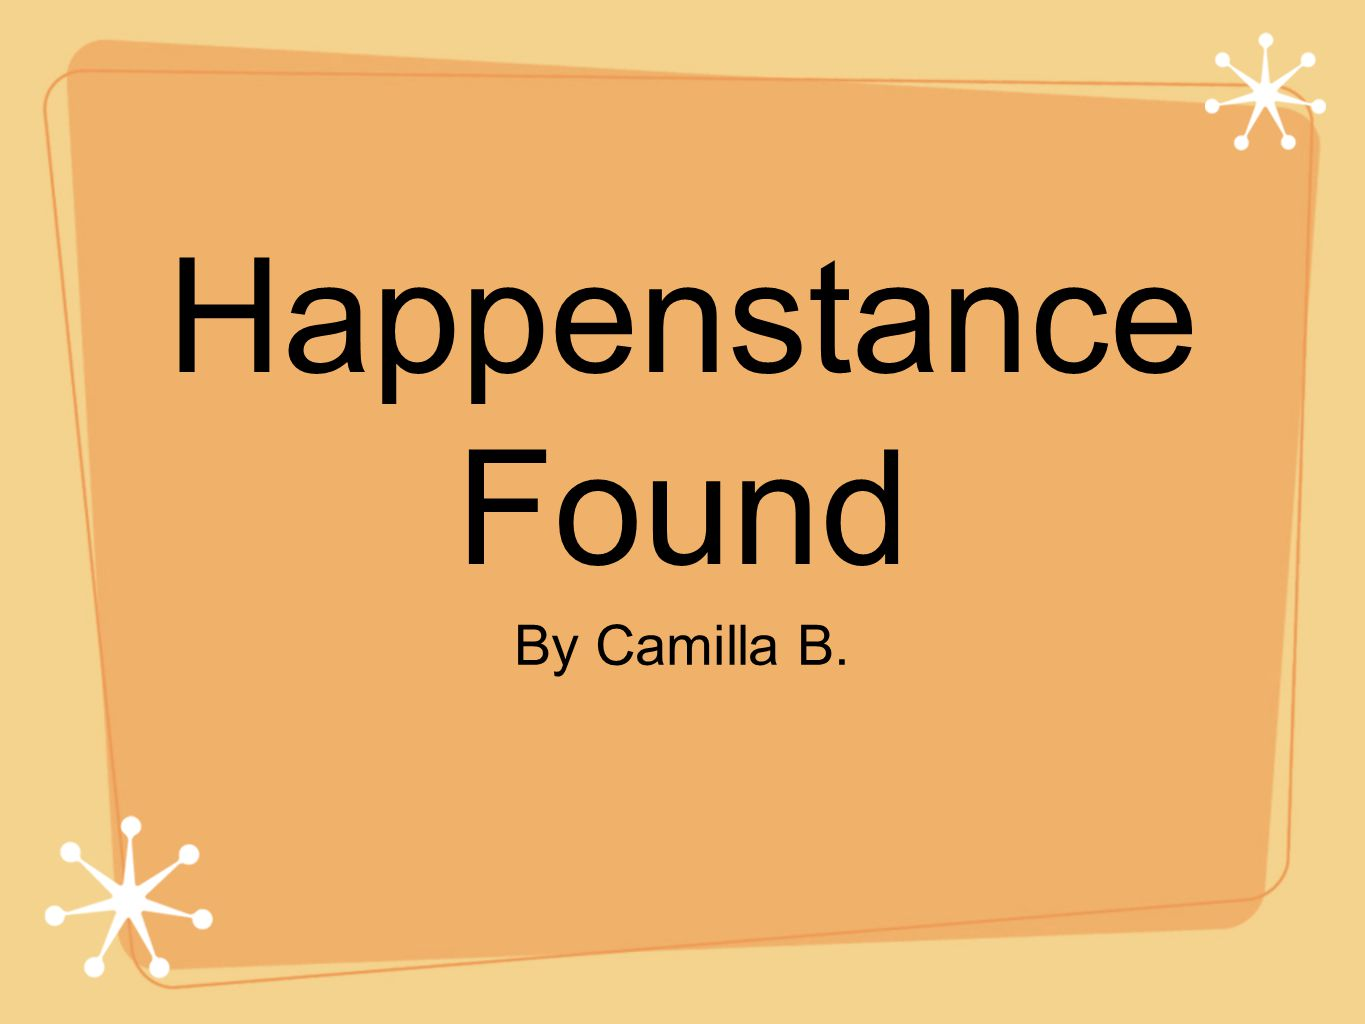 Battle If you did the battle last year, you may have read Happenstance Found by P.W Catanese.